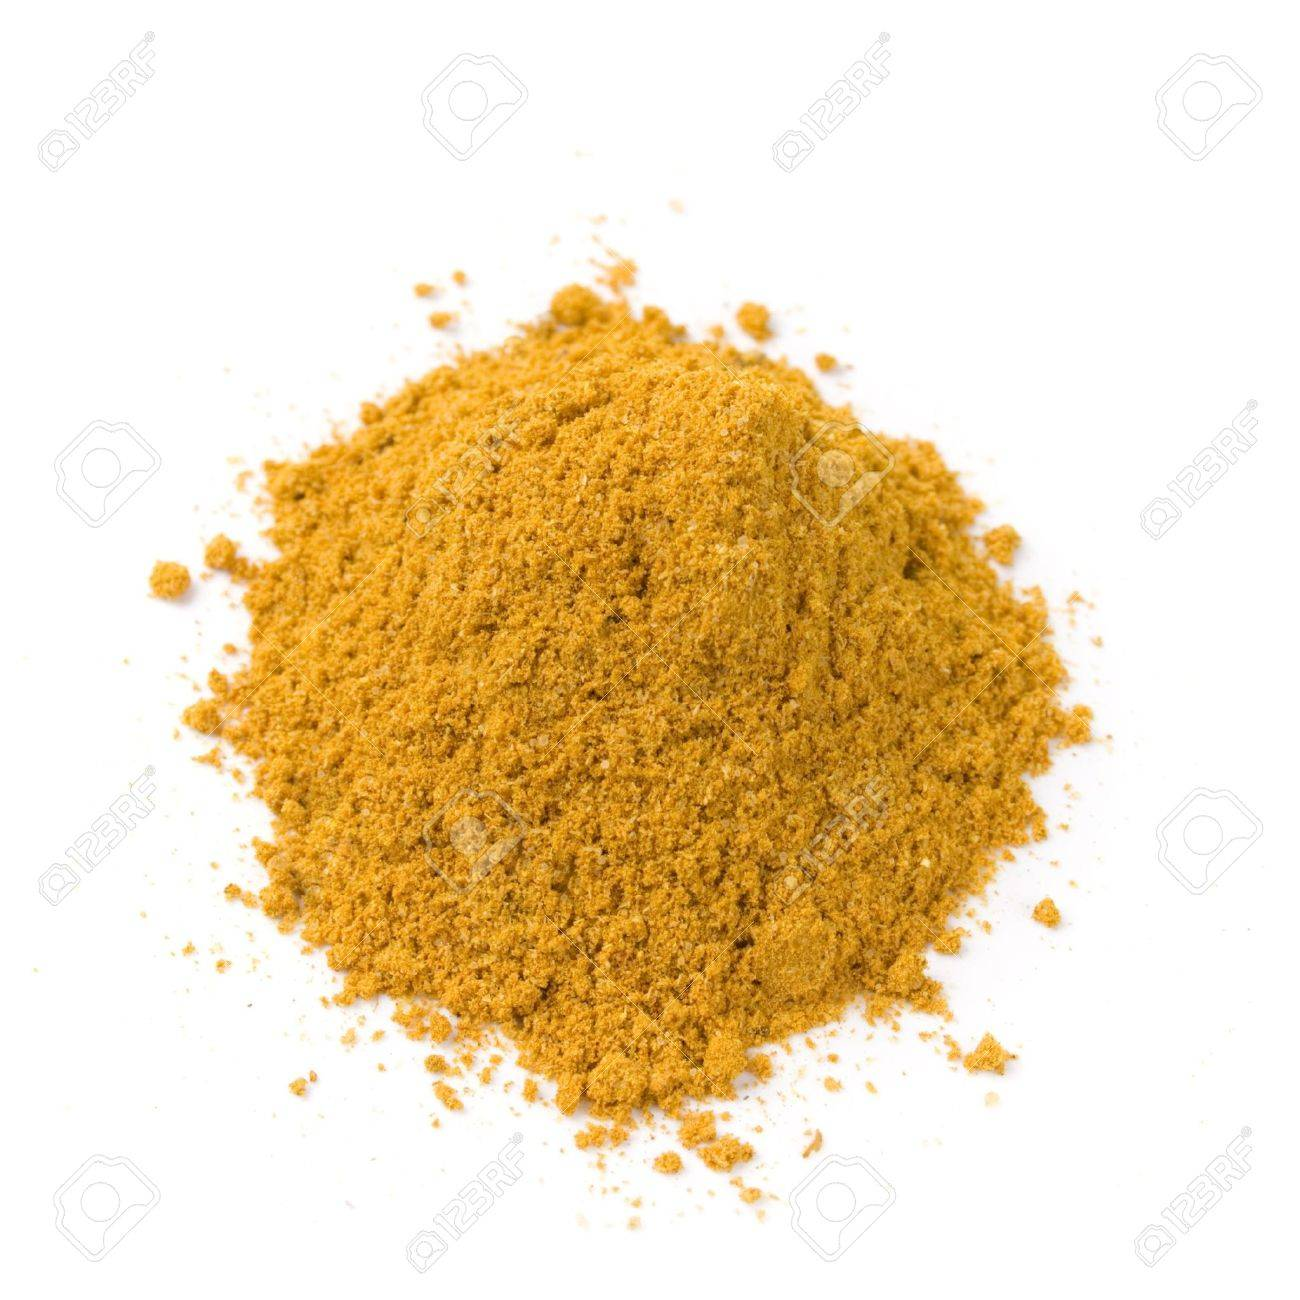 pile of bright curry powder isolated on white background - 4362894